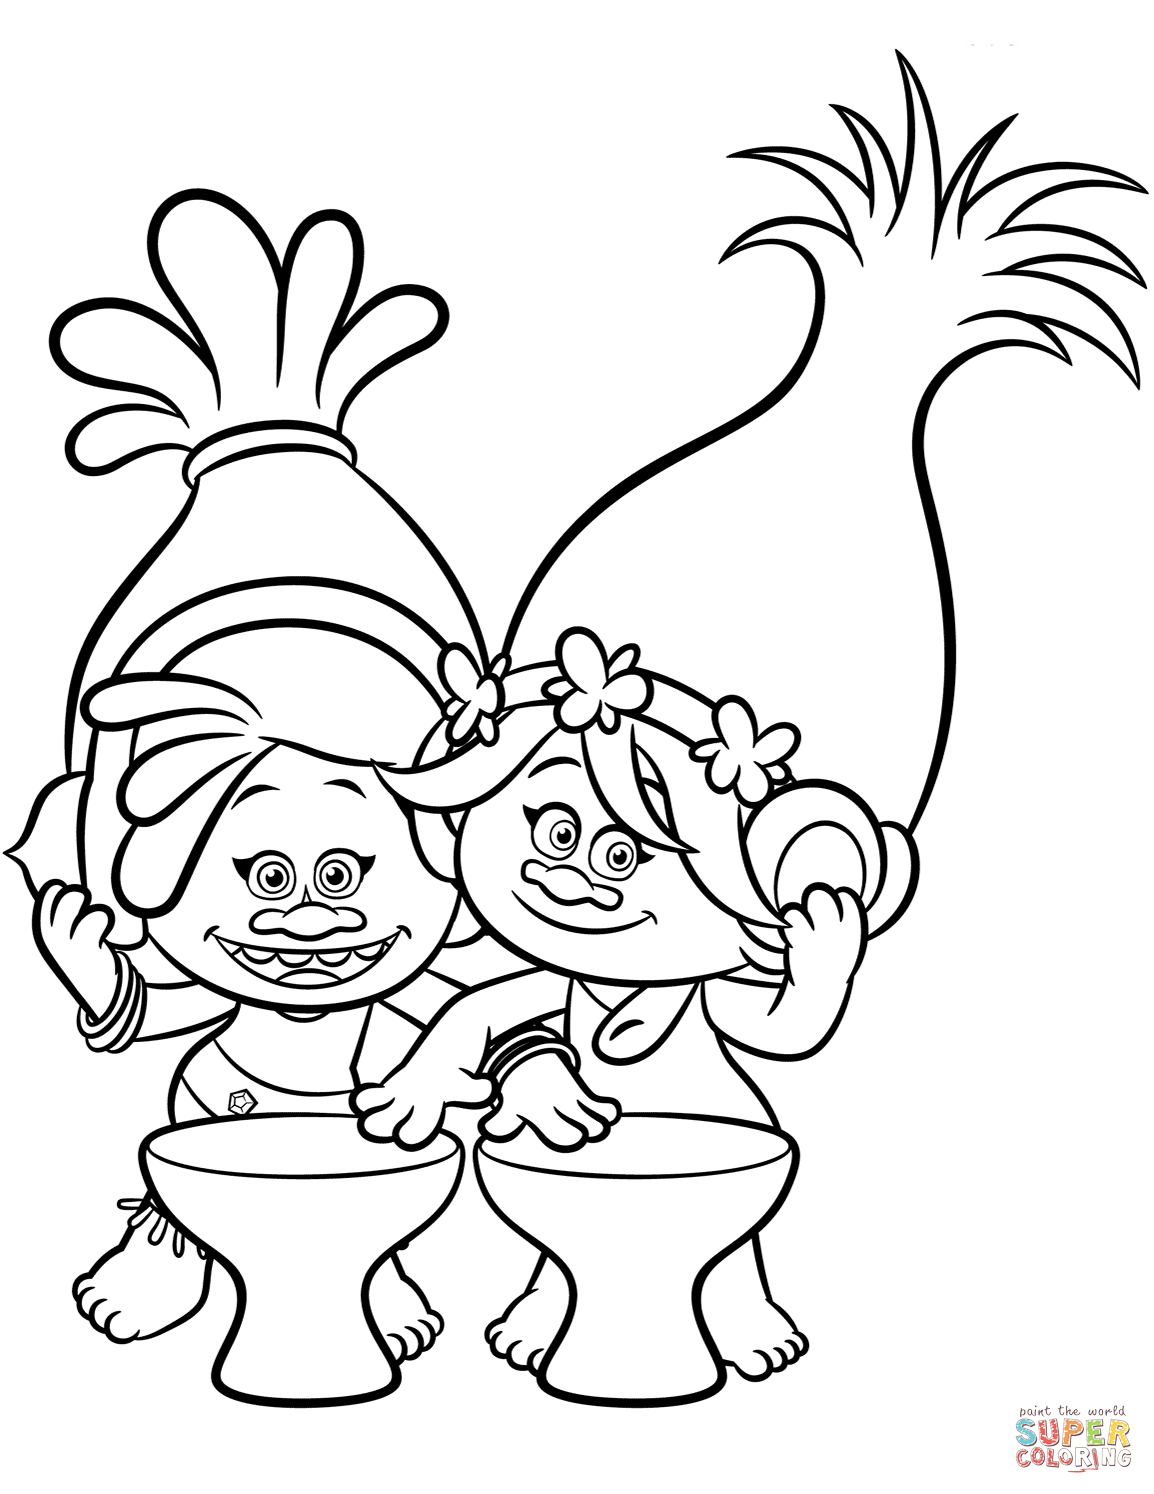 picture relating to Printable Trolls Coloring Pages referred to as Cost-free Trolls Coloring Web pages at  Cost-free for